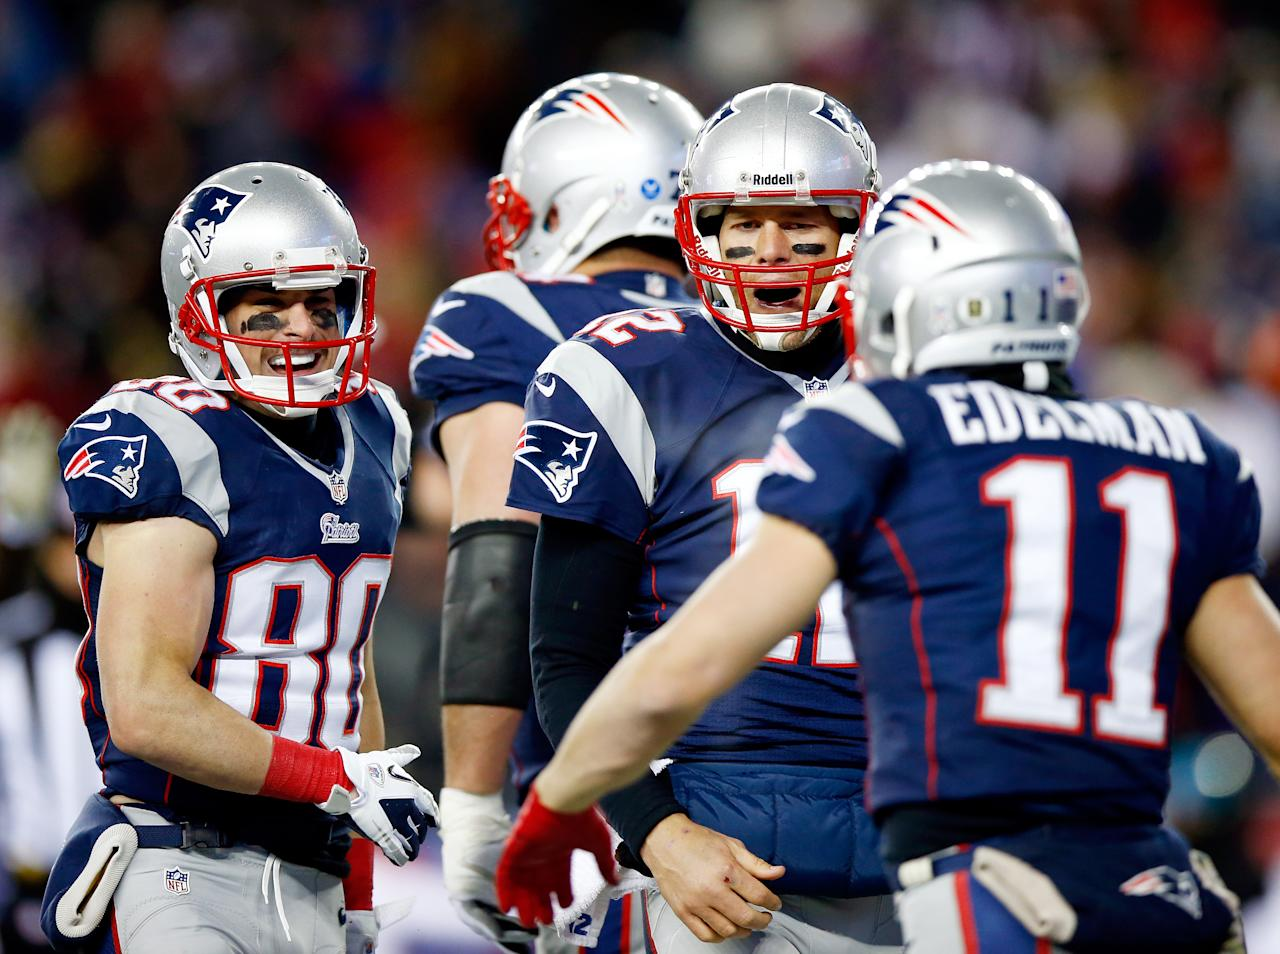 FOXBORO, MA - NOVEMBER 24: Quarterback Tom Brady #12 of the New England Patriots celebrates with wide receiver Julian Edelman #11 against the Denver Broncos during a game at Gillette Stadium on November 24, 2013 in Foxboro, Massachusetts.  (Photo by Jared Wickerham/Getty Images)